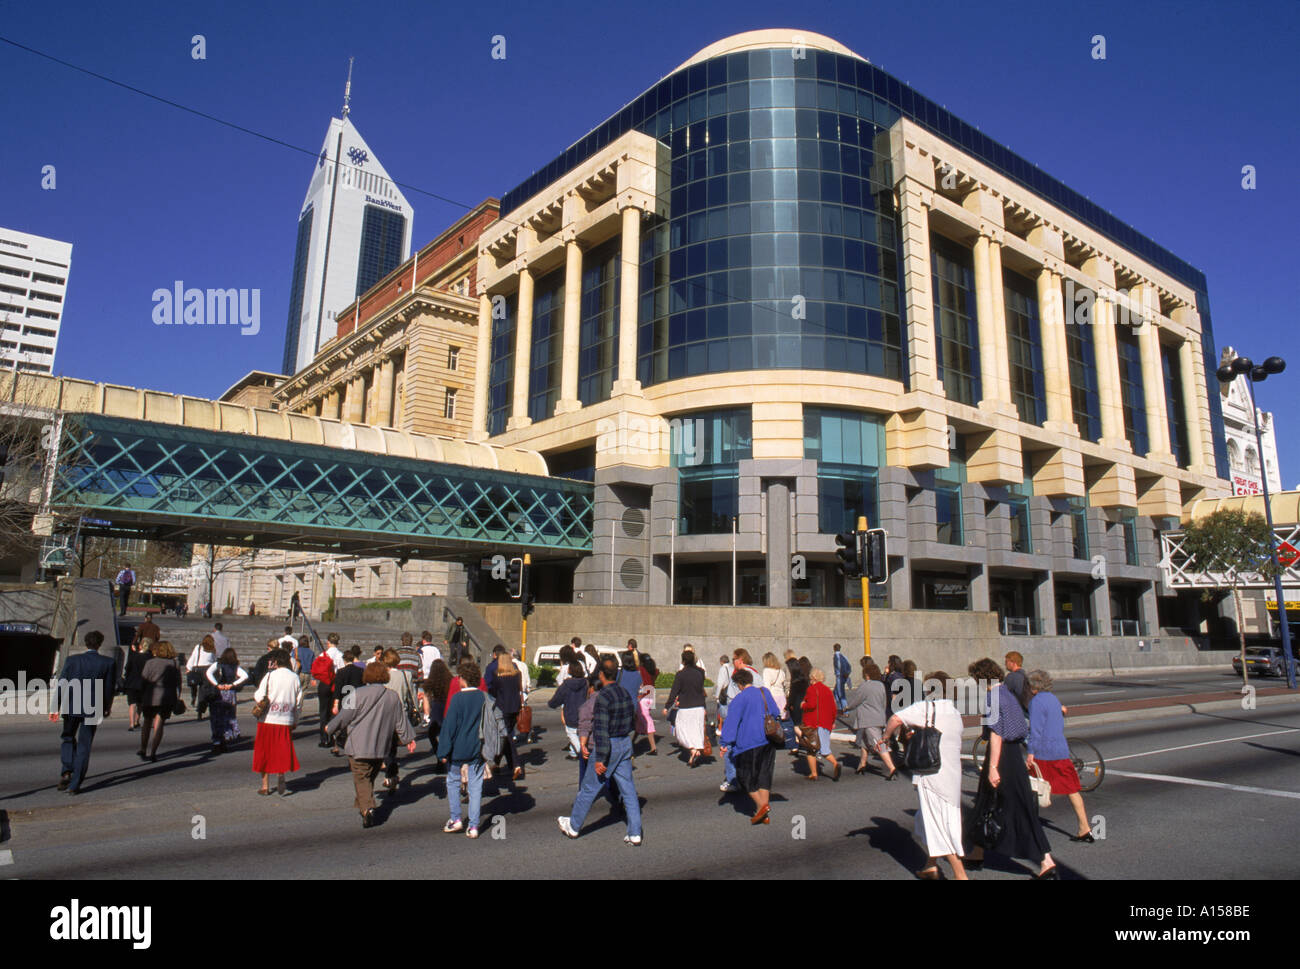 Commuters walking through Forrest Place in Perth Western Australia K Gillham - Stock Image